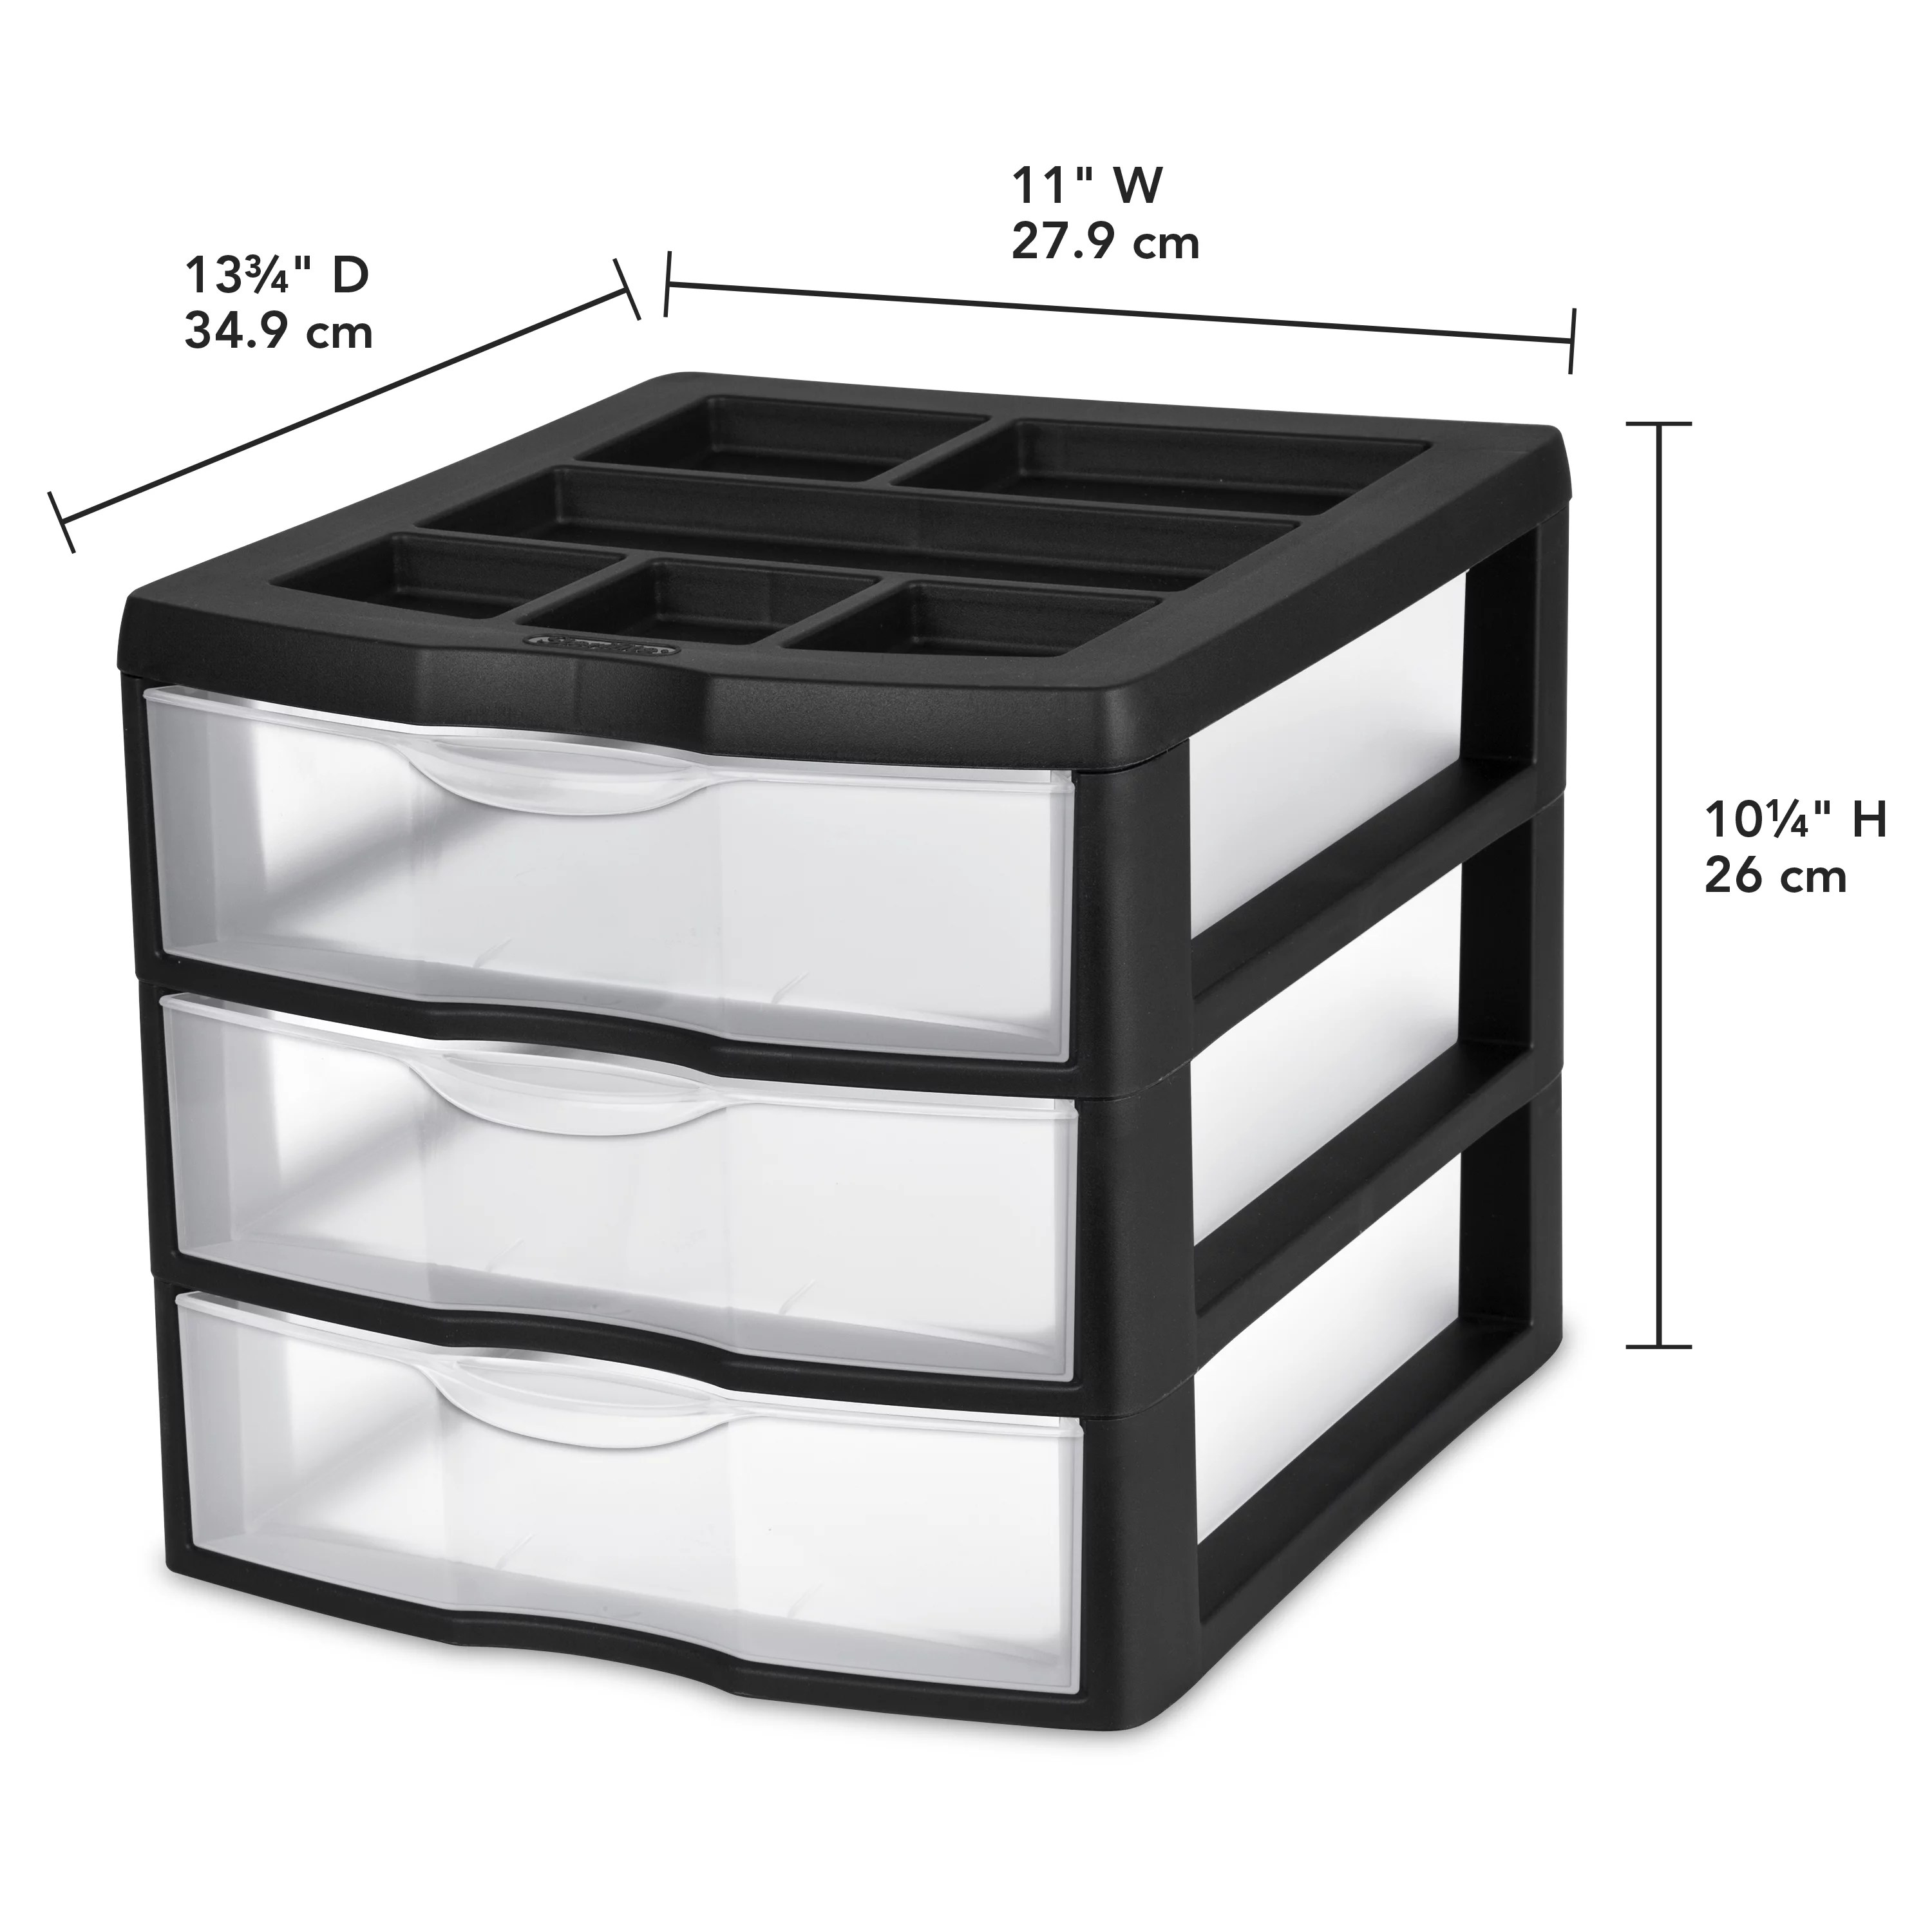 Desk Top Drawers Sterilite Medium 3 Drawer Desktop Unit Black